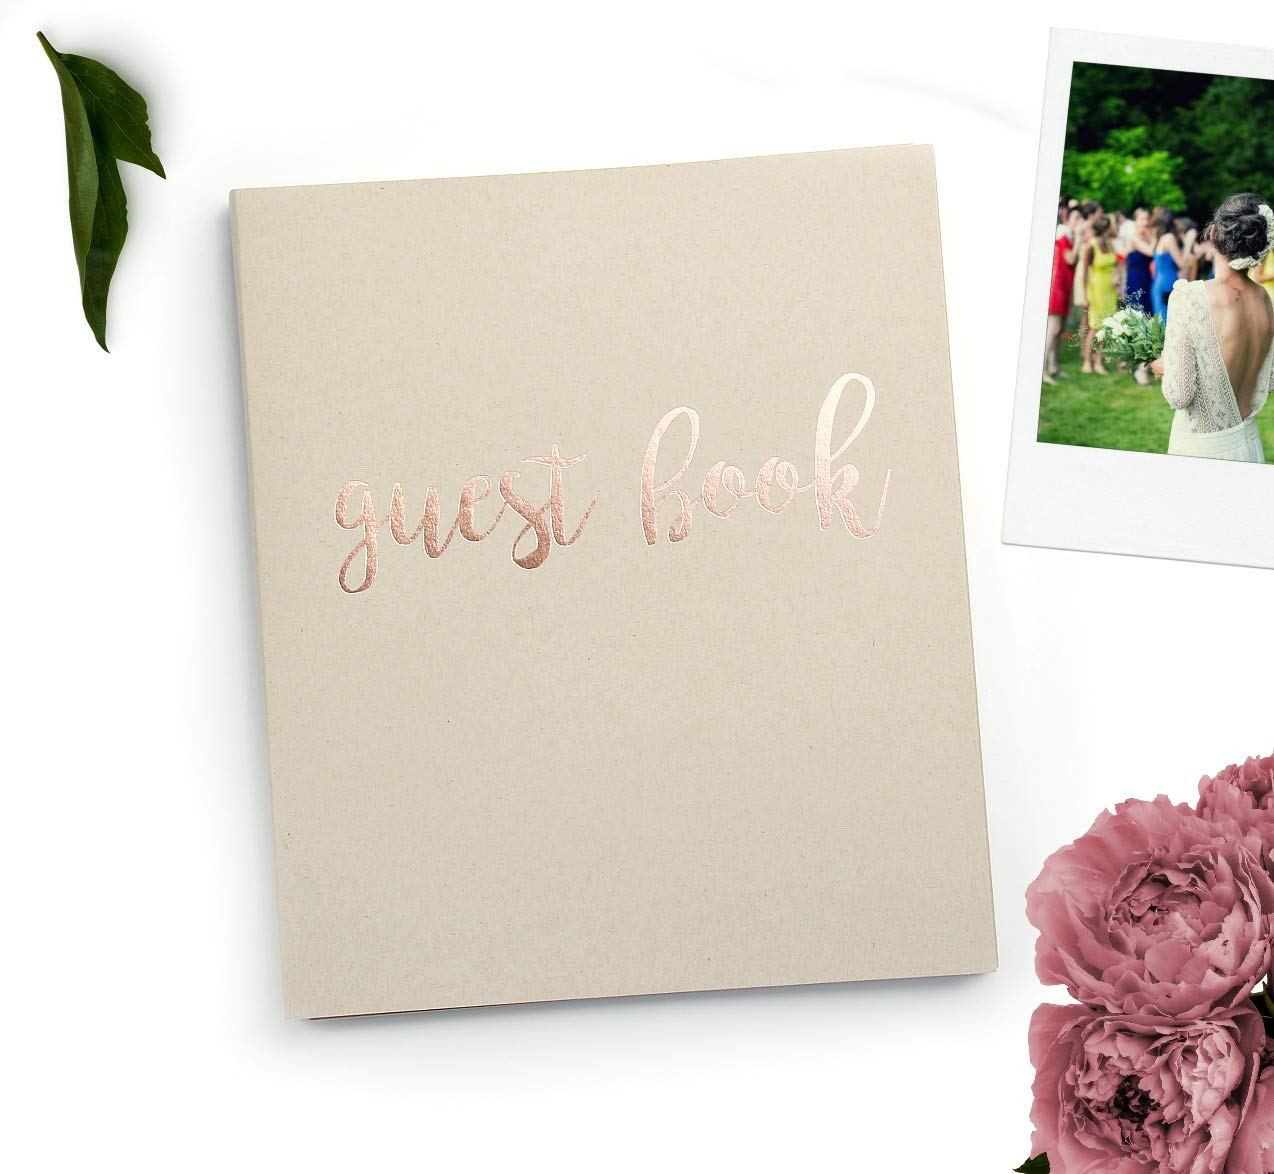 Guest Book Wedding Guest Book Alternative. 8.5'' x 7'' Flat-Lay Softcover, 130 pgs, Kraft Cardstock Softcover w/Rose Gold Foil. Rustic Wedding Guestbook, Photo Guest Book Instax Guest Book (Sand)